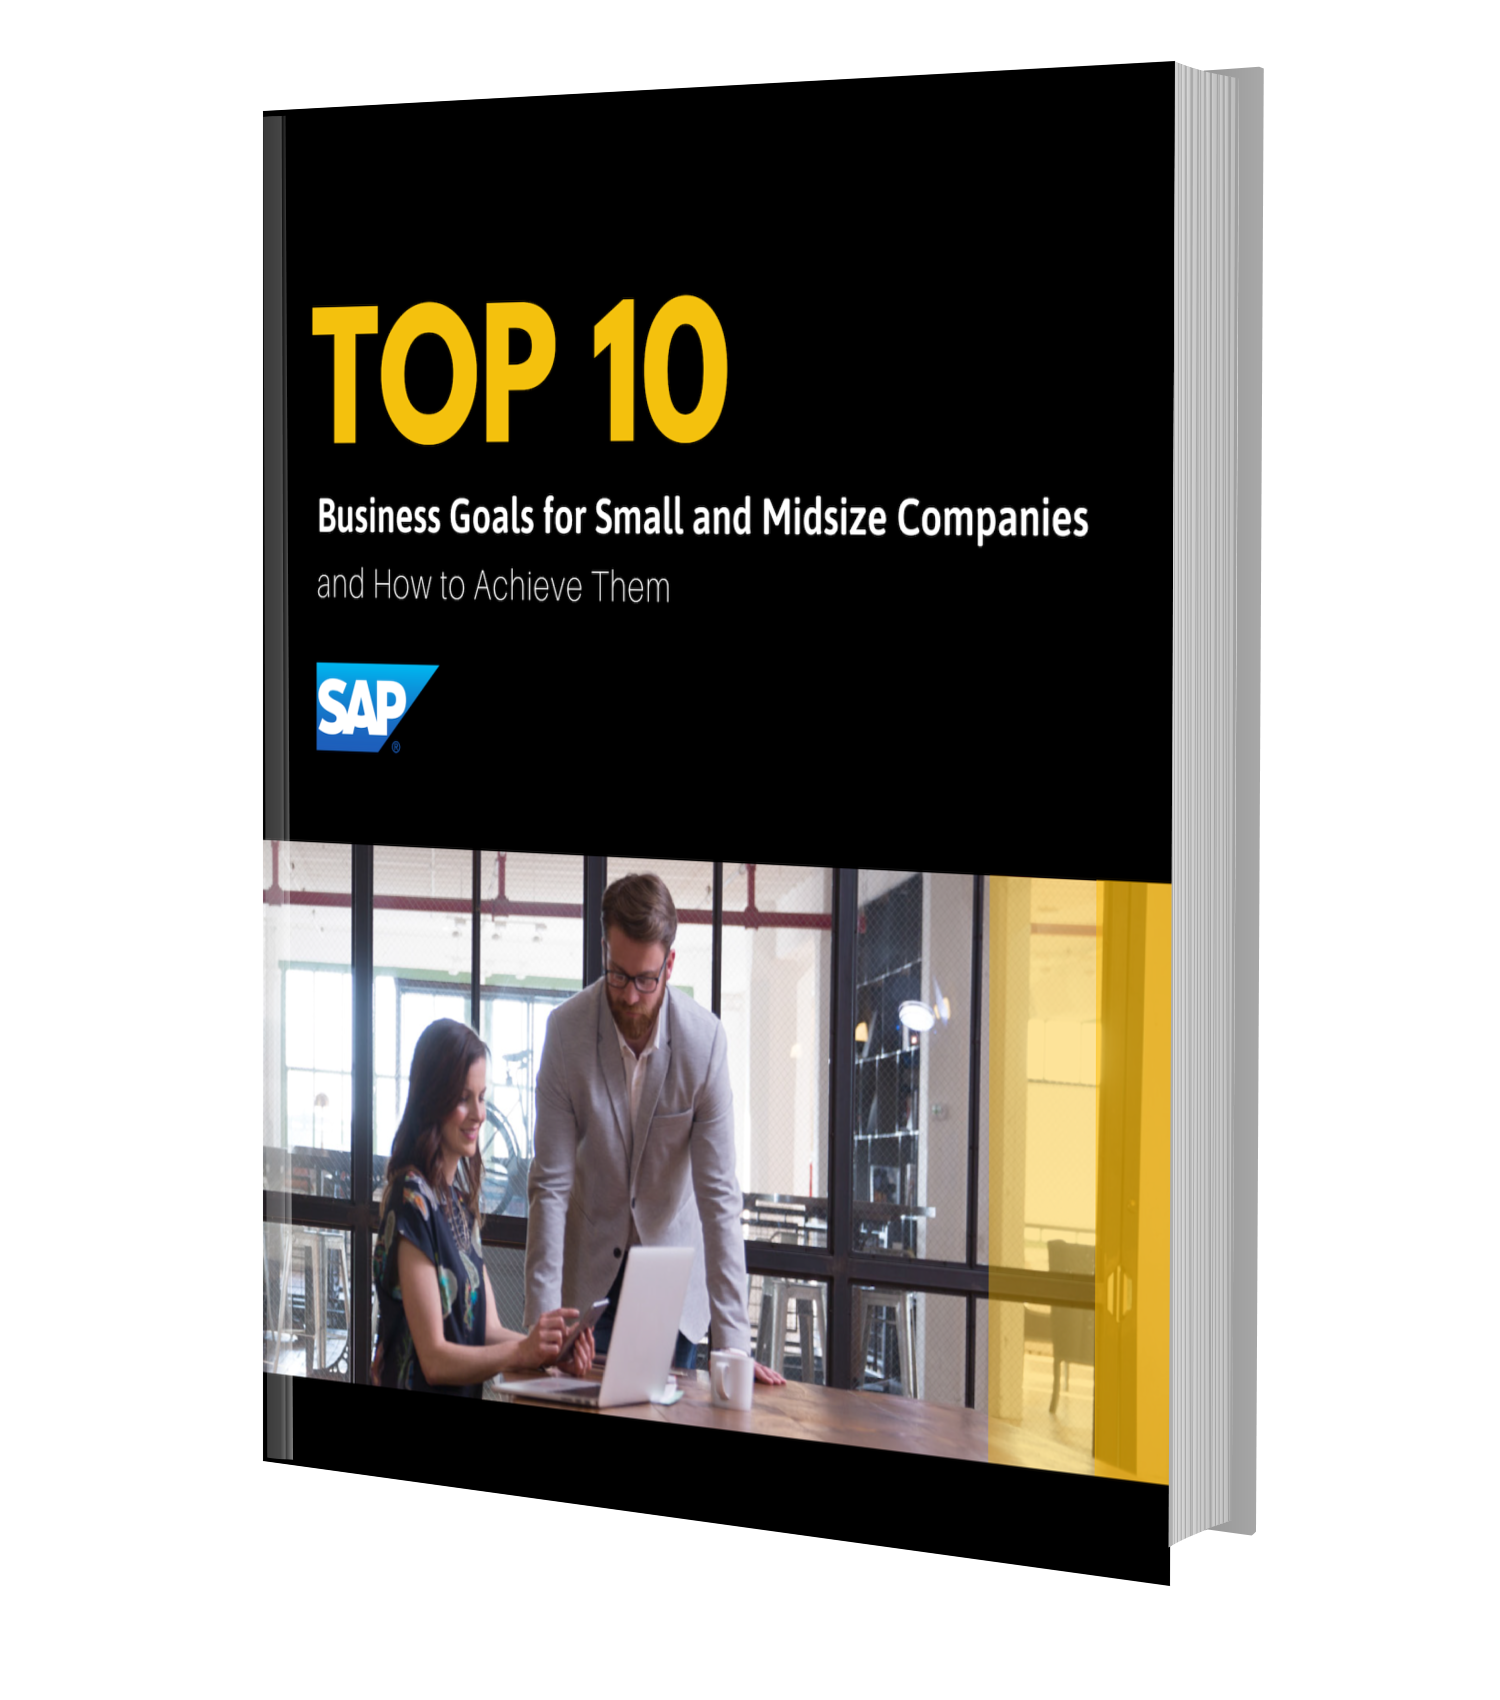 SAP - Top 10 Business Goals for SMEs ebook